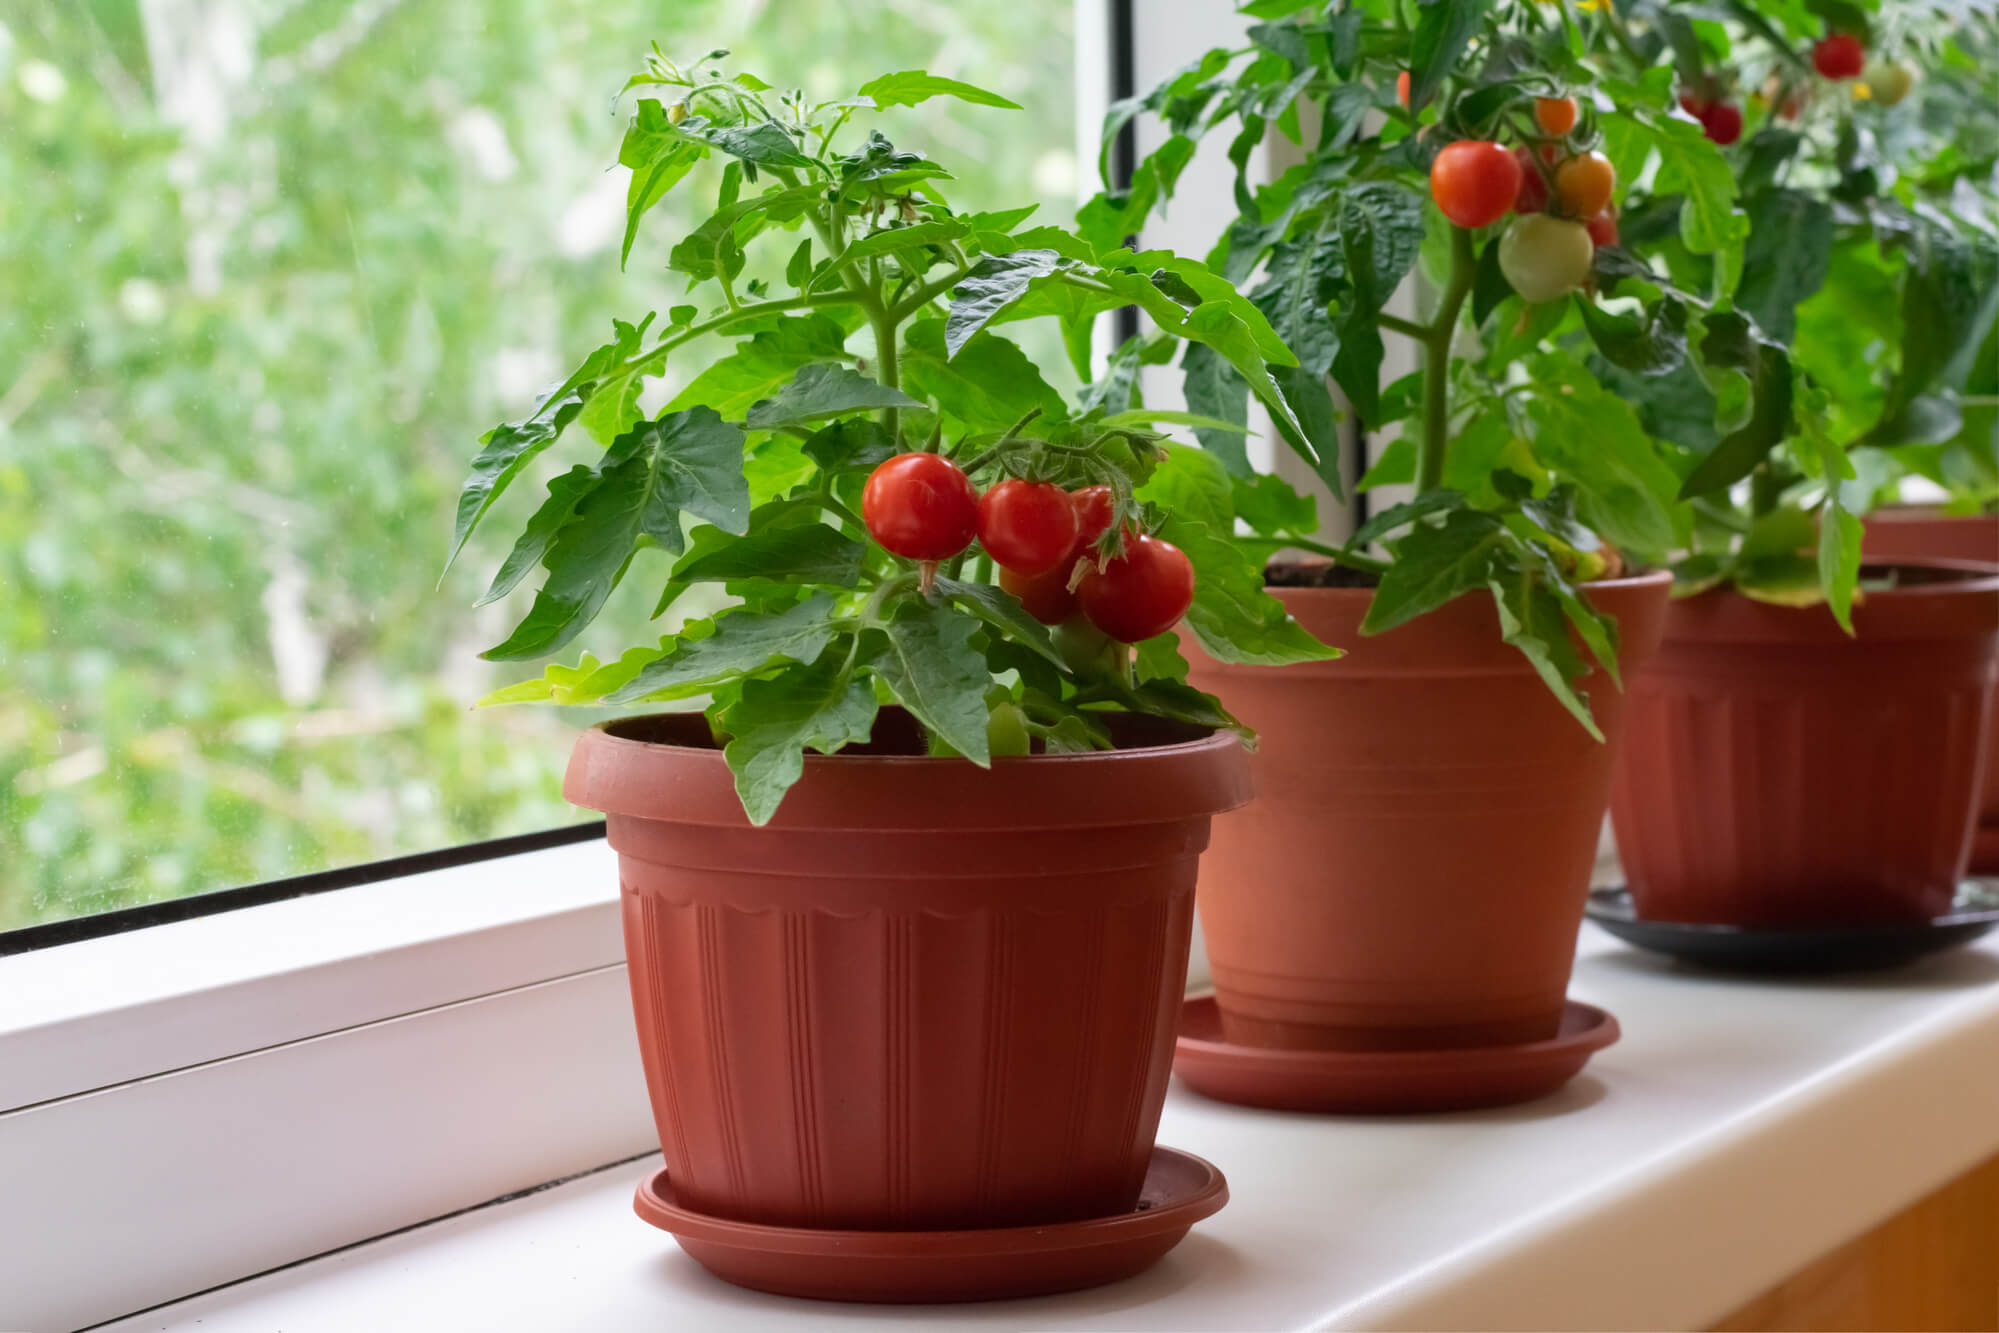 How to Grow Cherry Tomatoes in a Pot - Gardner Resource